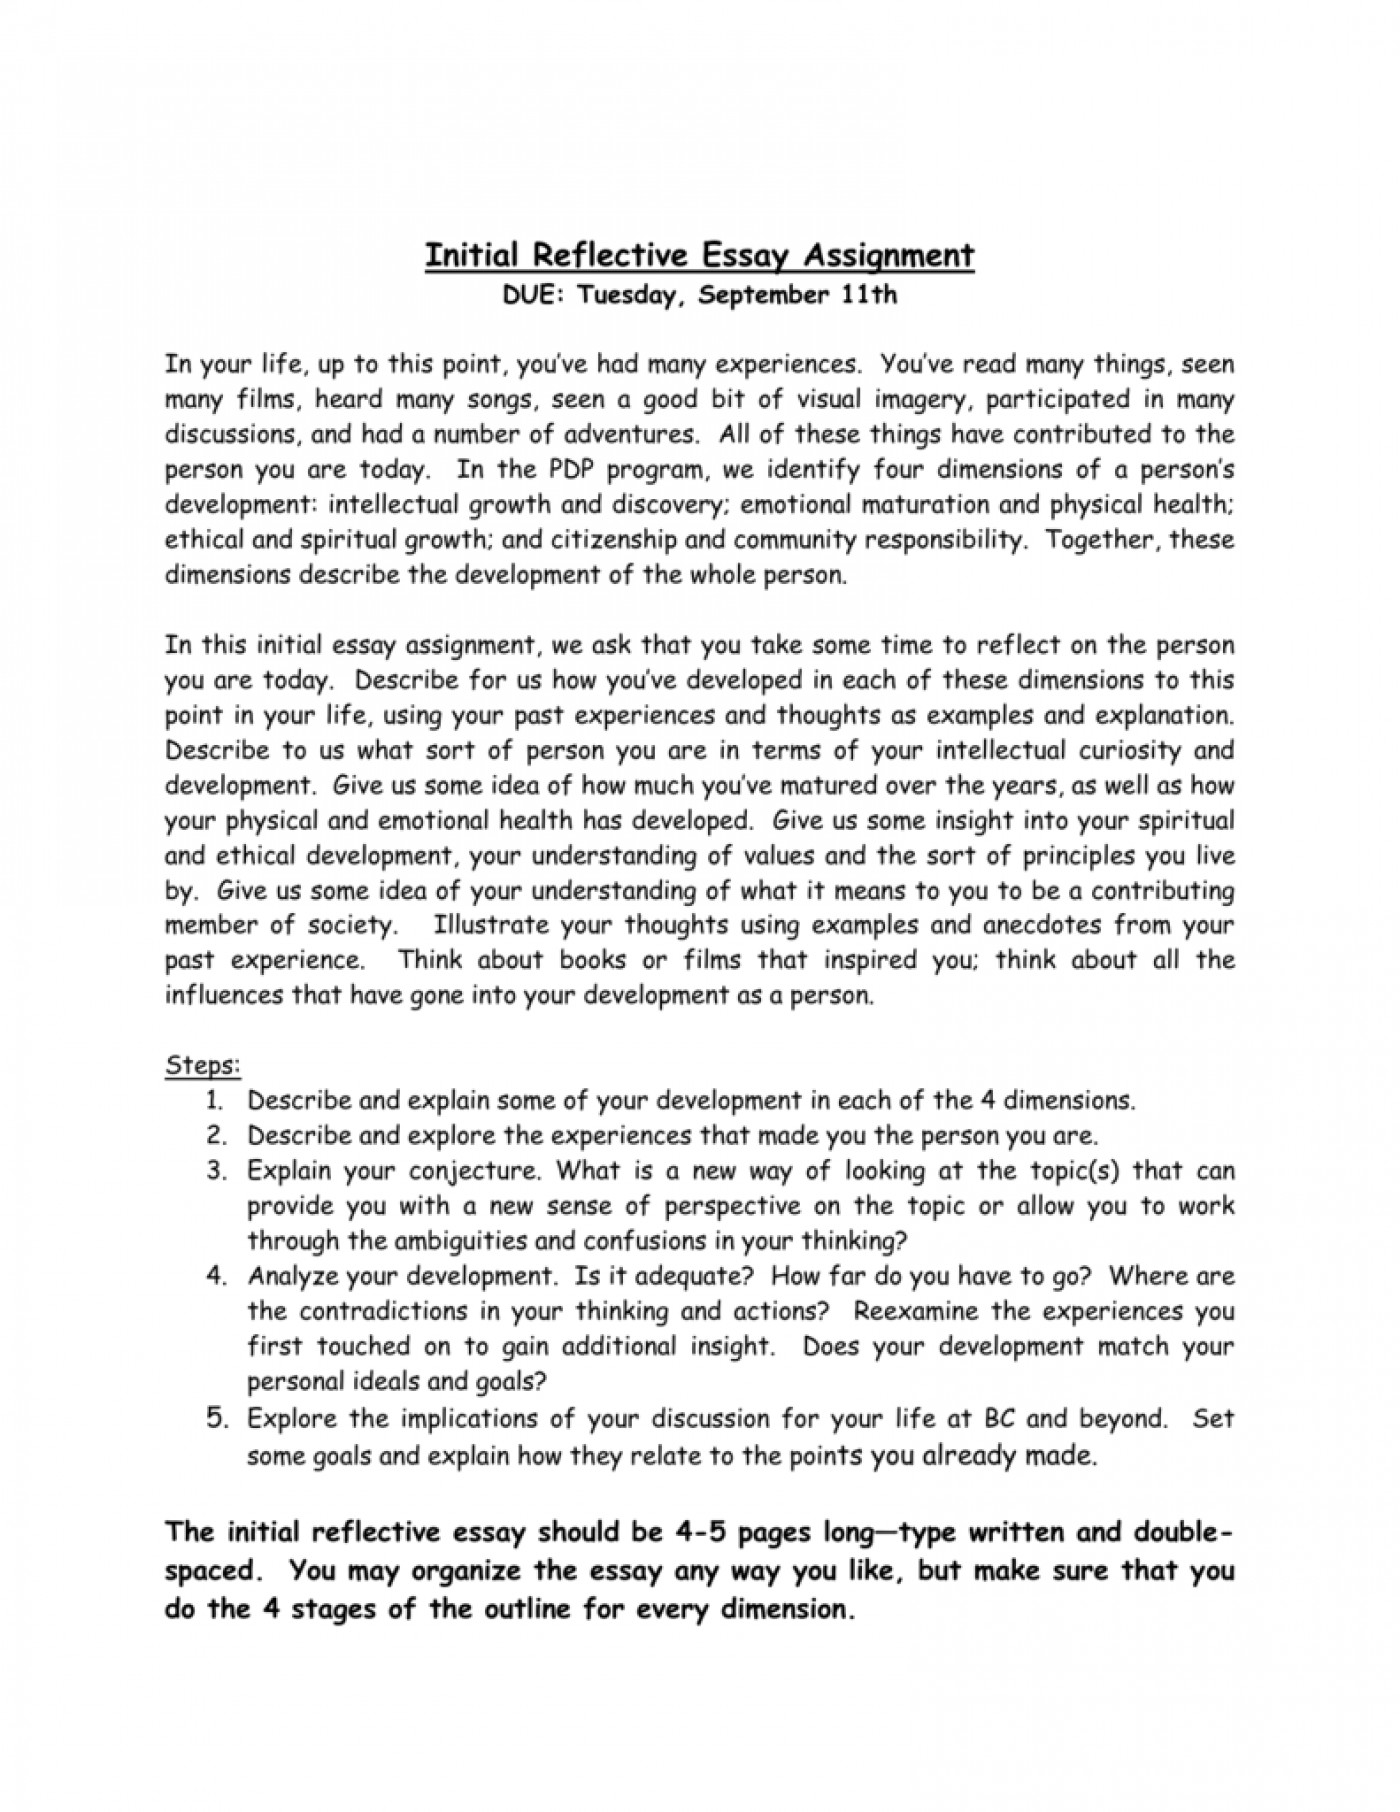 007 Essay Example 008579814 1 Amazing Reflective Rubric Doc Format Apa Examples About Writing 1400